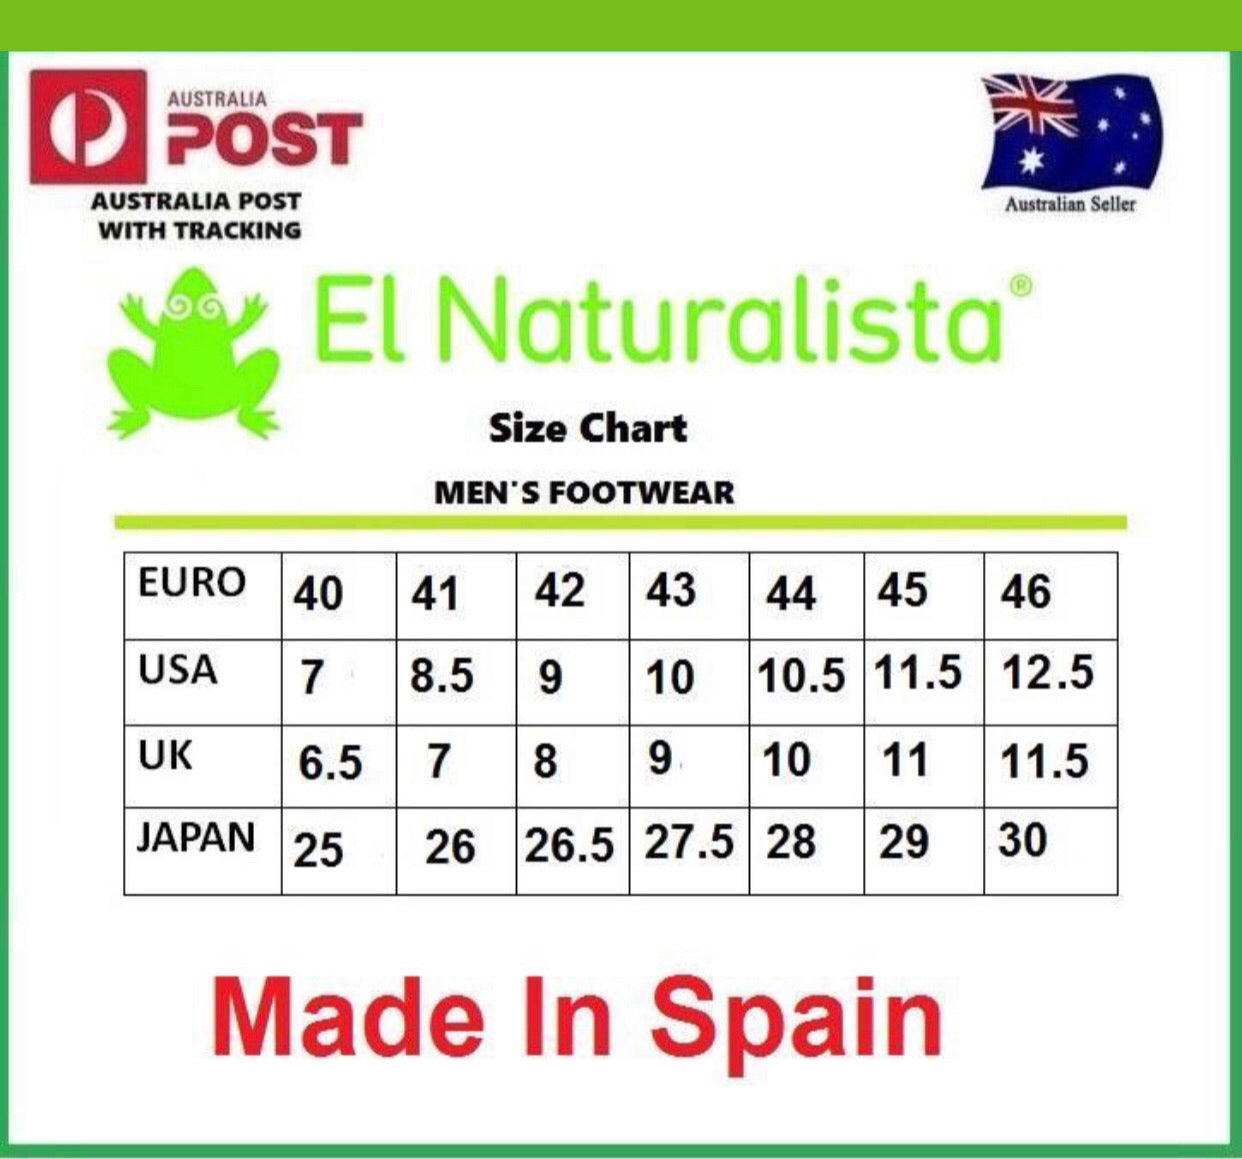 El Naturalista NG22 Brown Ankle Elastic Sided Made In Spain